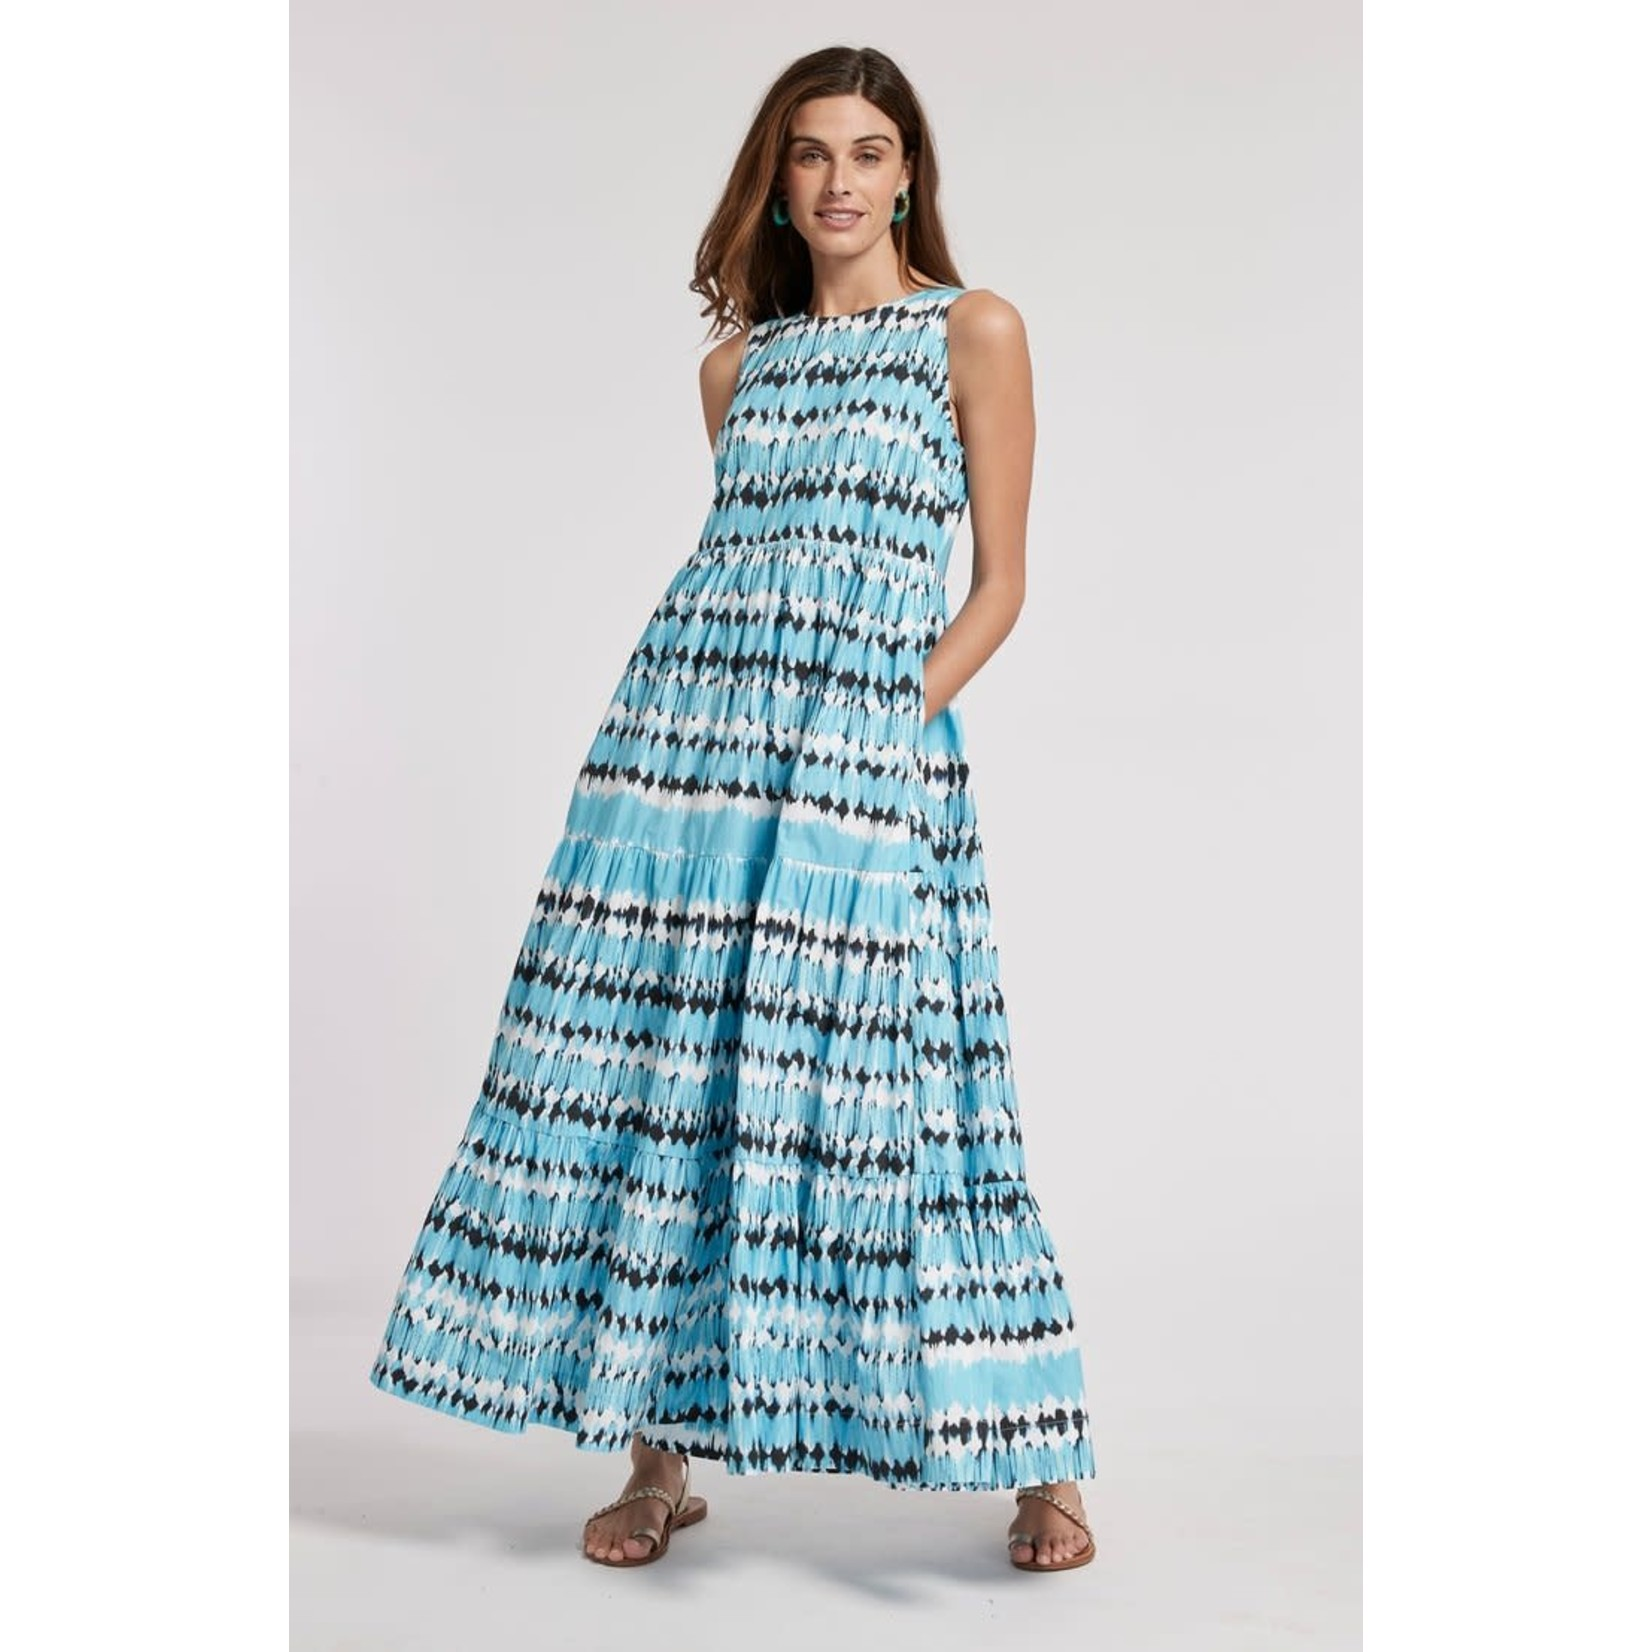 Tyler Boe Rachel Poplin Maxi Dress in Turquoise and Black